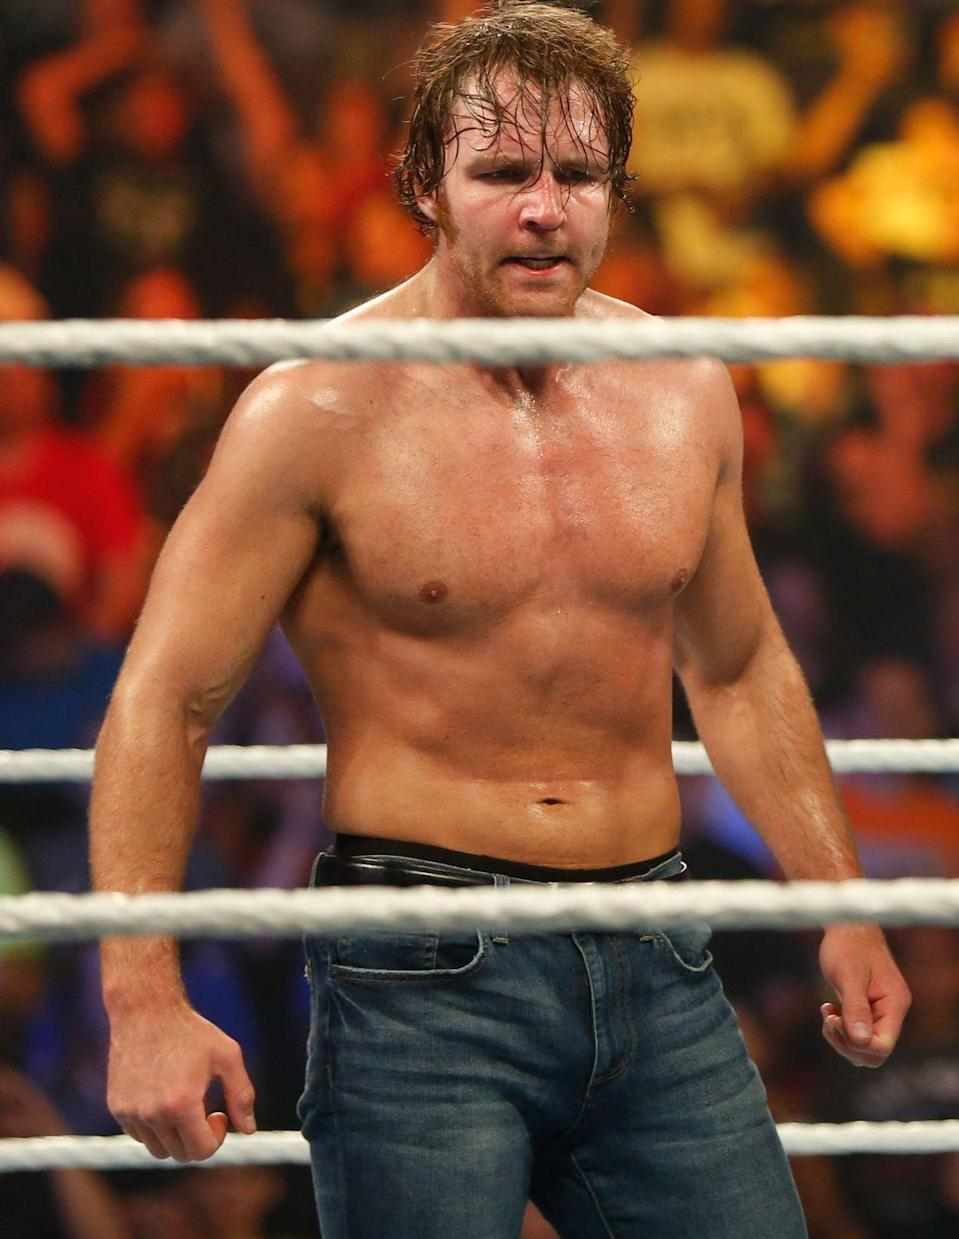 <p>The only ex-WWE star who arguably has as little need for a comeback as Cody Rhodes is Dean Ambrose.</p><p>Sure, he's not a co-founder of AEW, but in the short time since his (surprisingly smooth) split from the WWE, the reborn Jon Moxley has taken the independent wrestling world by storm.</p><p>His debut at AEW: Double or Nothing got worldwide attention, as did his gruesome Unsanctioned Match with Kenny Omega at Full Gear and his eventual capture of the AEW World Championship as its second titleholder.</p><p>What's more, he's not reliant on the fortunes of the fledgling company, with matches in New Japan, Northeast and other promotions meaning he's got a lot keeping him busy.</p><p>Mox has been pretty vocal about what he didn't like about WWE (long story short: Vince McMahon's daft ideas), but Vince is in his 70s and seems to be slowwwwwwwly giving up control.</p><p>Jon is only half that age, and it's certainly possible to imagine a not-too distant future where Dean Ambrose returns to the WWE with a little more freedom to express himself (though probably with fewer deathmatches).</p>